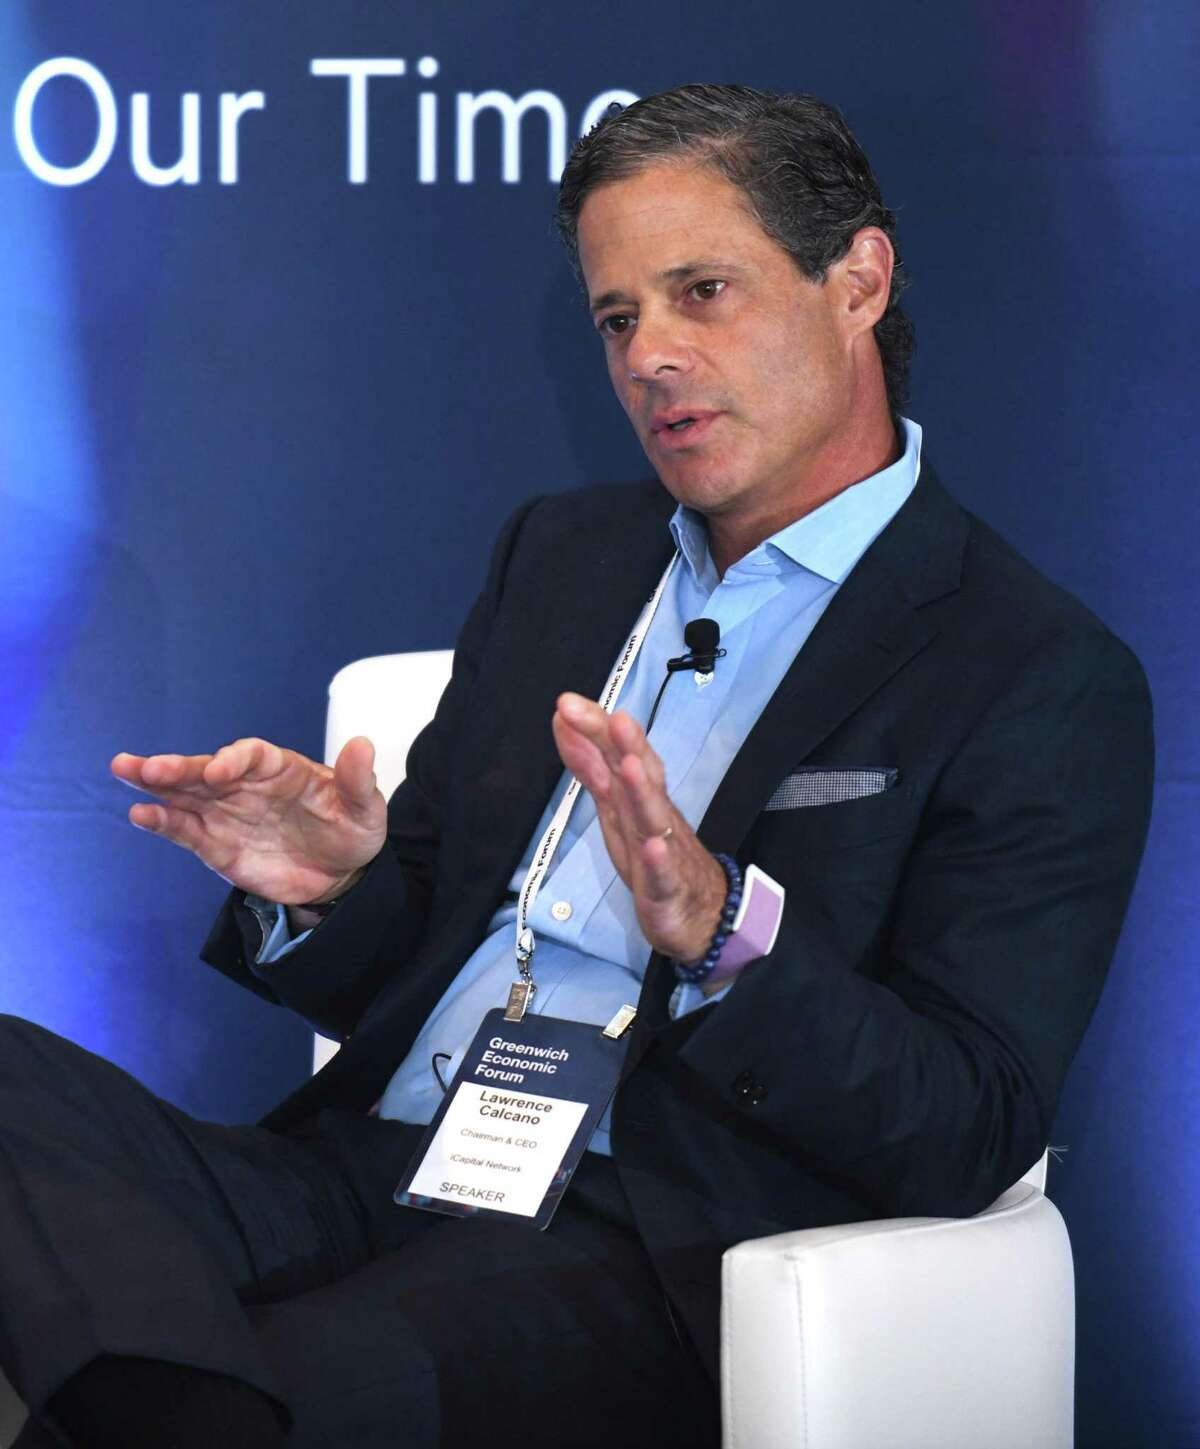 iCapital Network CEO and Chairman Lawrence Calcano speaks during a panel discussion at the Greenwich Economic Forum at the Delamar hotel in Greenwich, Conn., on Tuesday, Sept. 21, 2021.